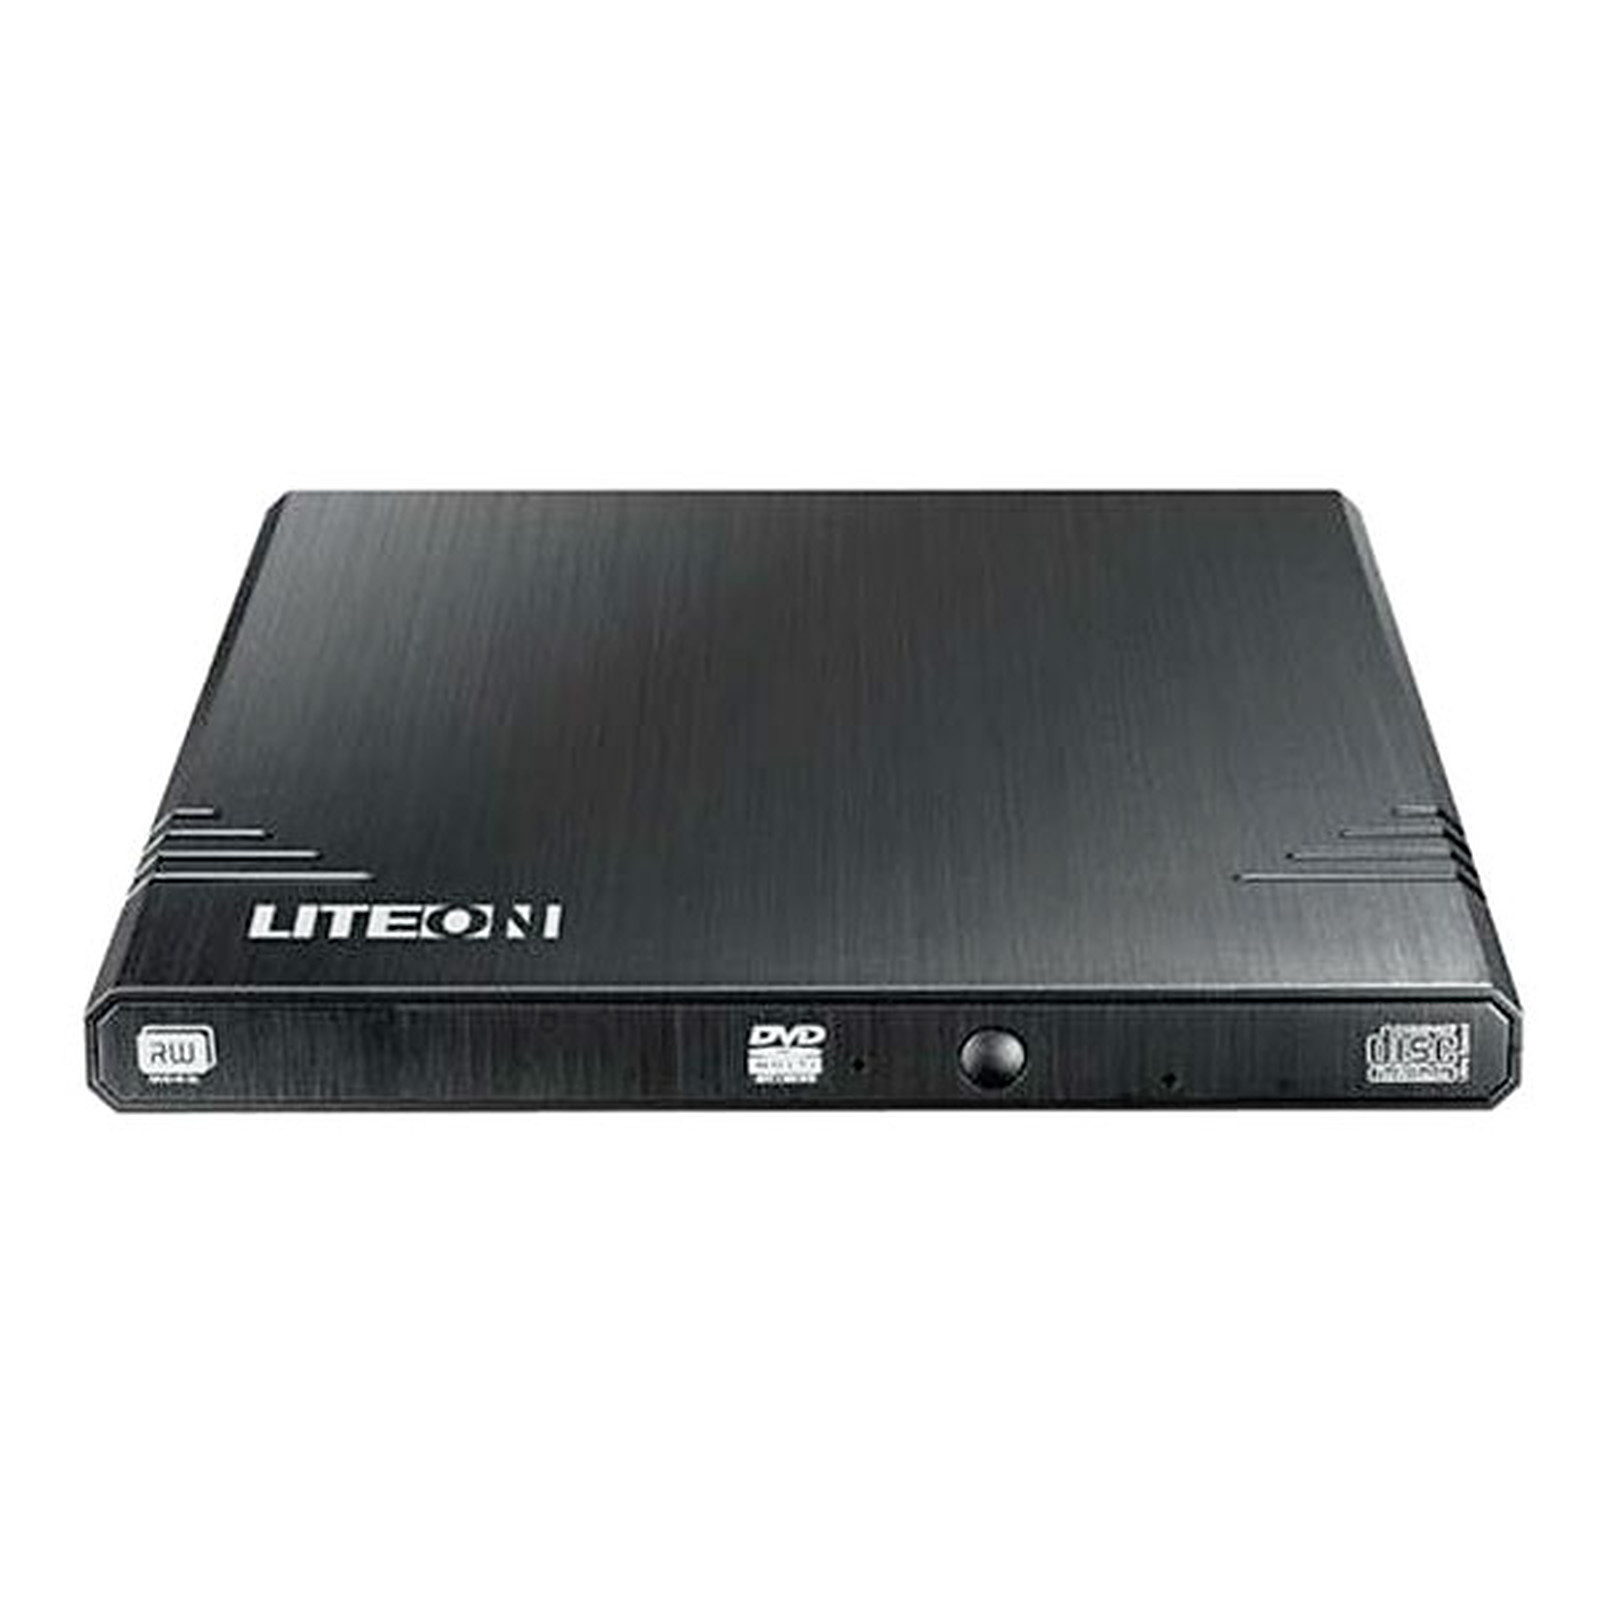 Graveur de DVD slim externe USB Lite-On EBAU108, Informatique Réunion 974